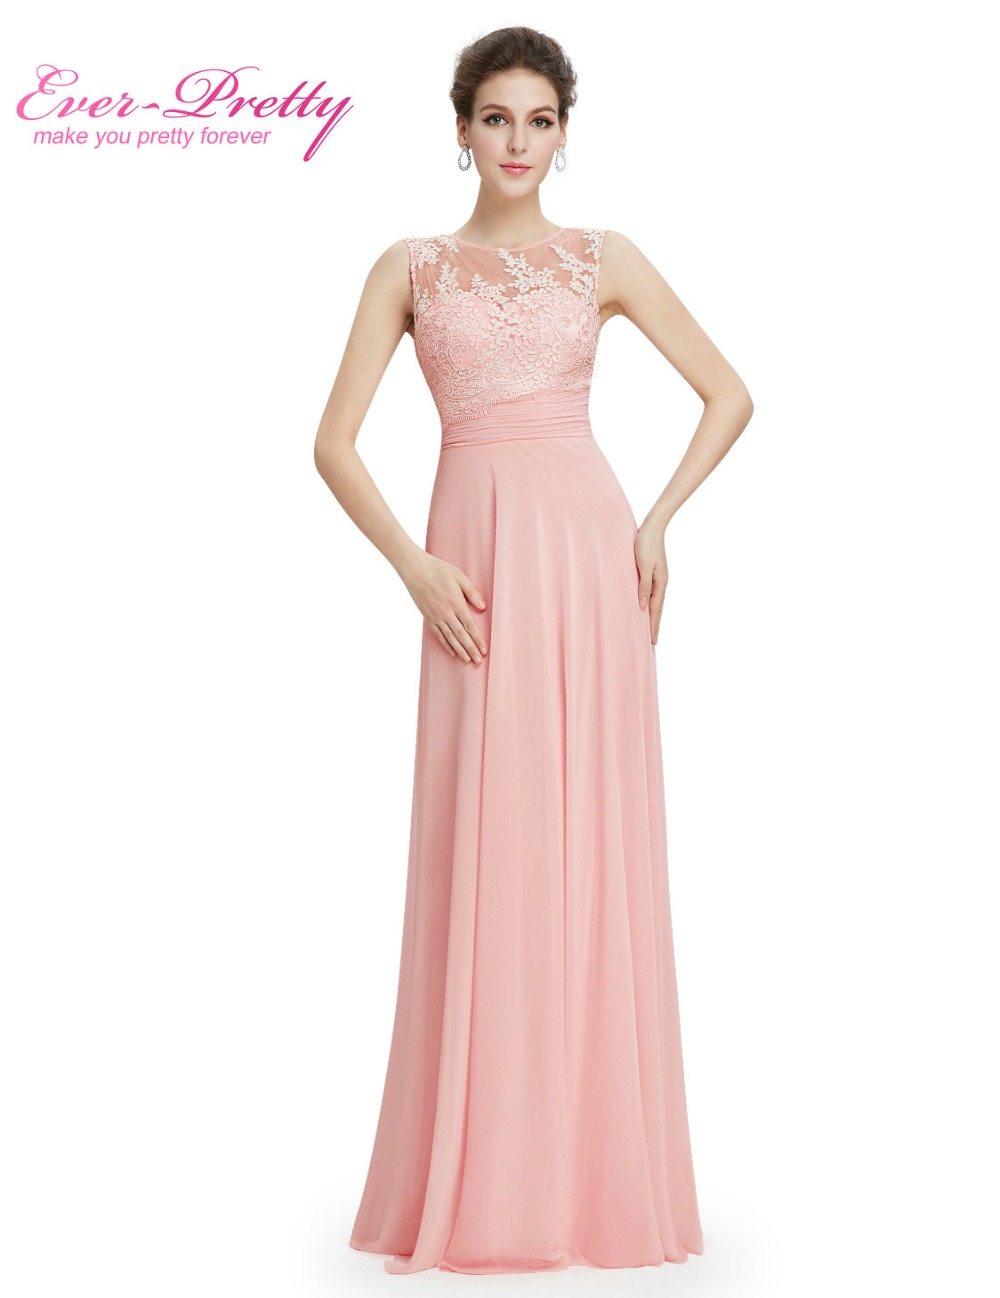 Light pink bridesmaids dresses reviews online shopping light elegant light pink chiffon long bridesmaid dresses ep08760 2017 vestido formal dress floor length sleeveless bridesmaid dresses ombrellifo Image collections